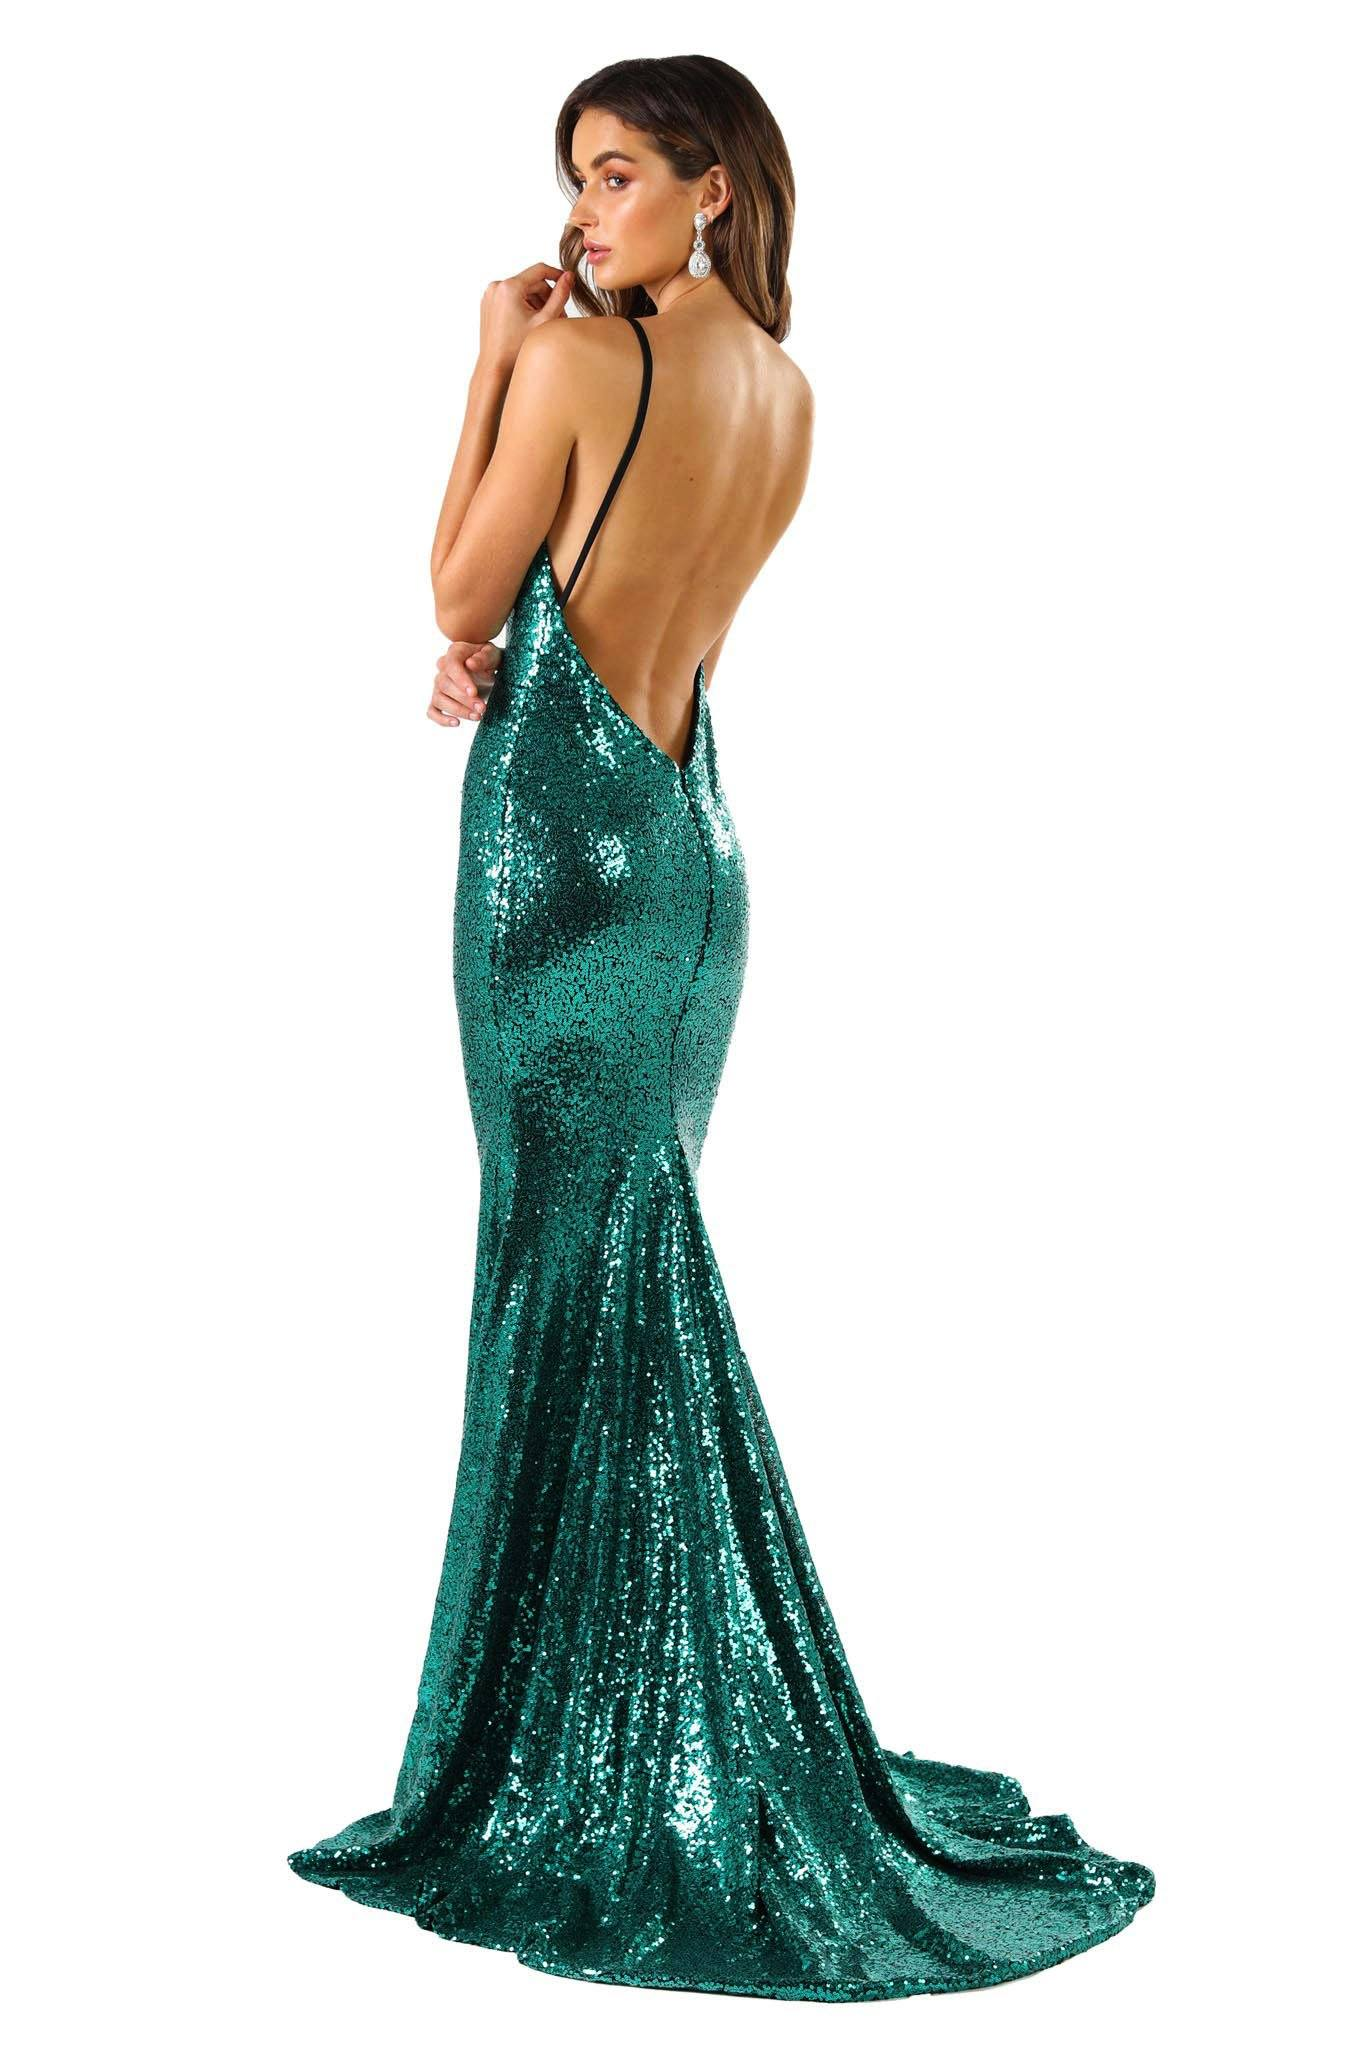 V Shaped Backless Design of Emerald Green Sequin Formal Prom Sleeveless Gown featuring Deep V Neck, Thin Shoulder Straps, and Long Train